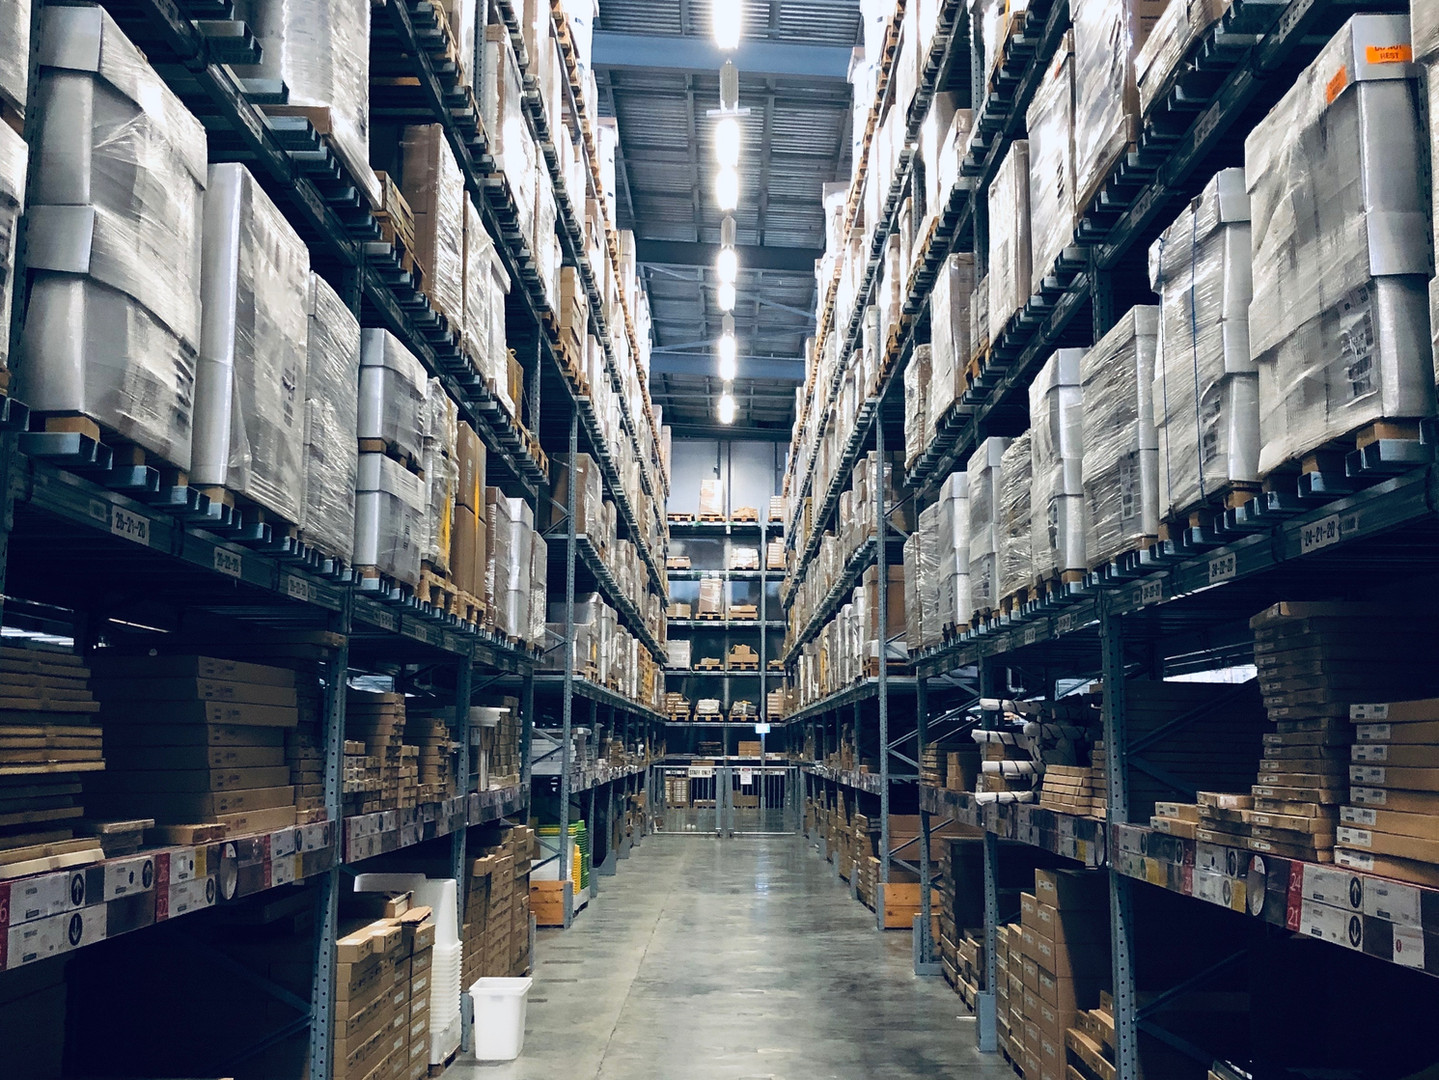 Inventory/Warehouse Management